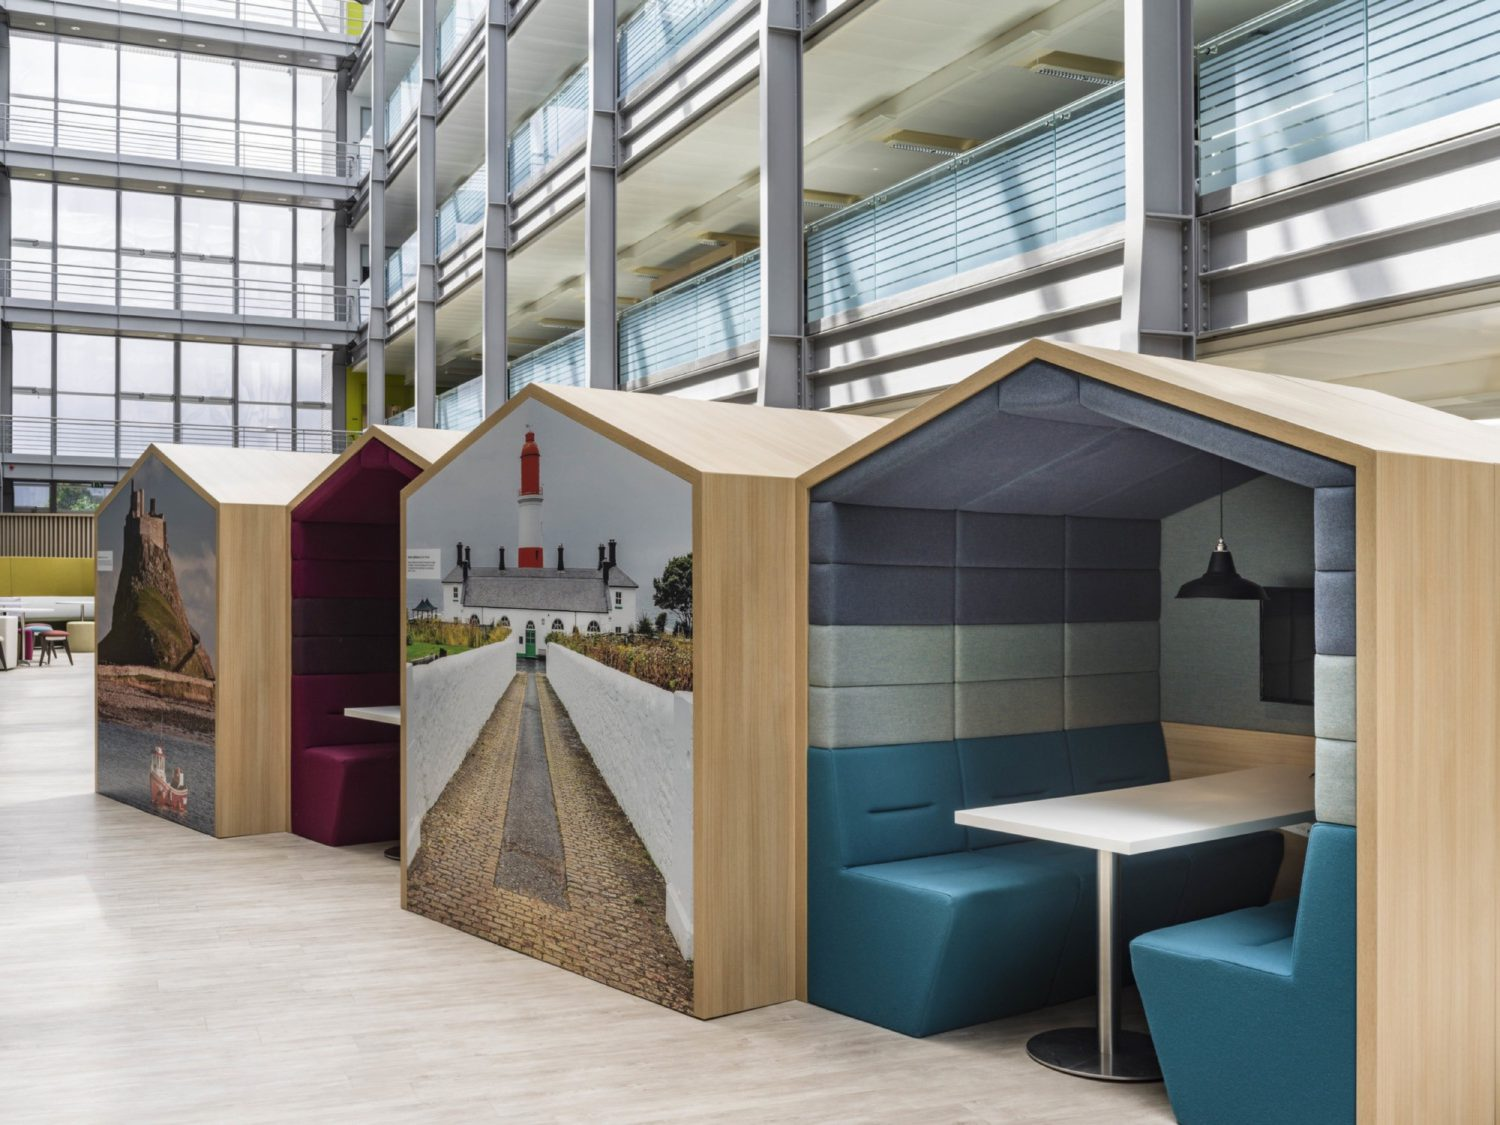 HMRC work pods